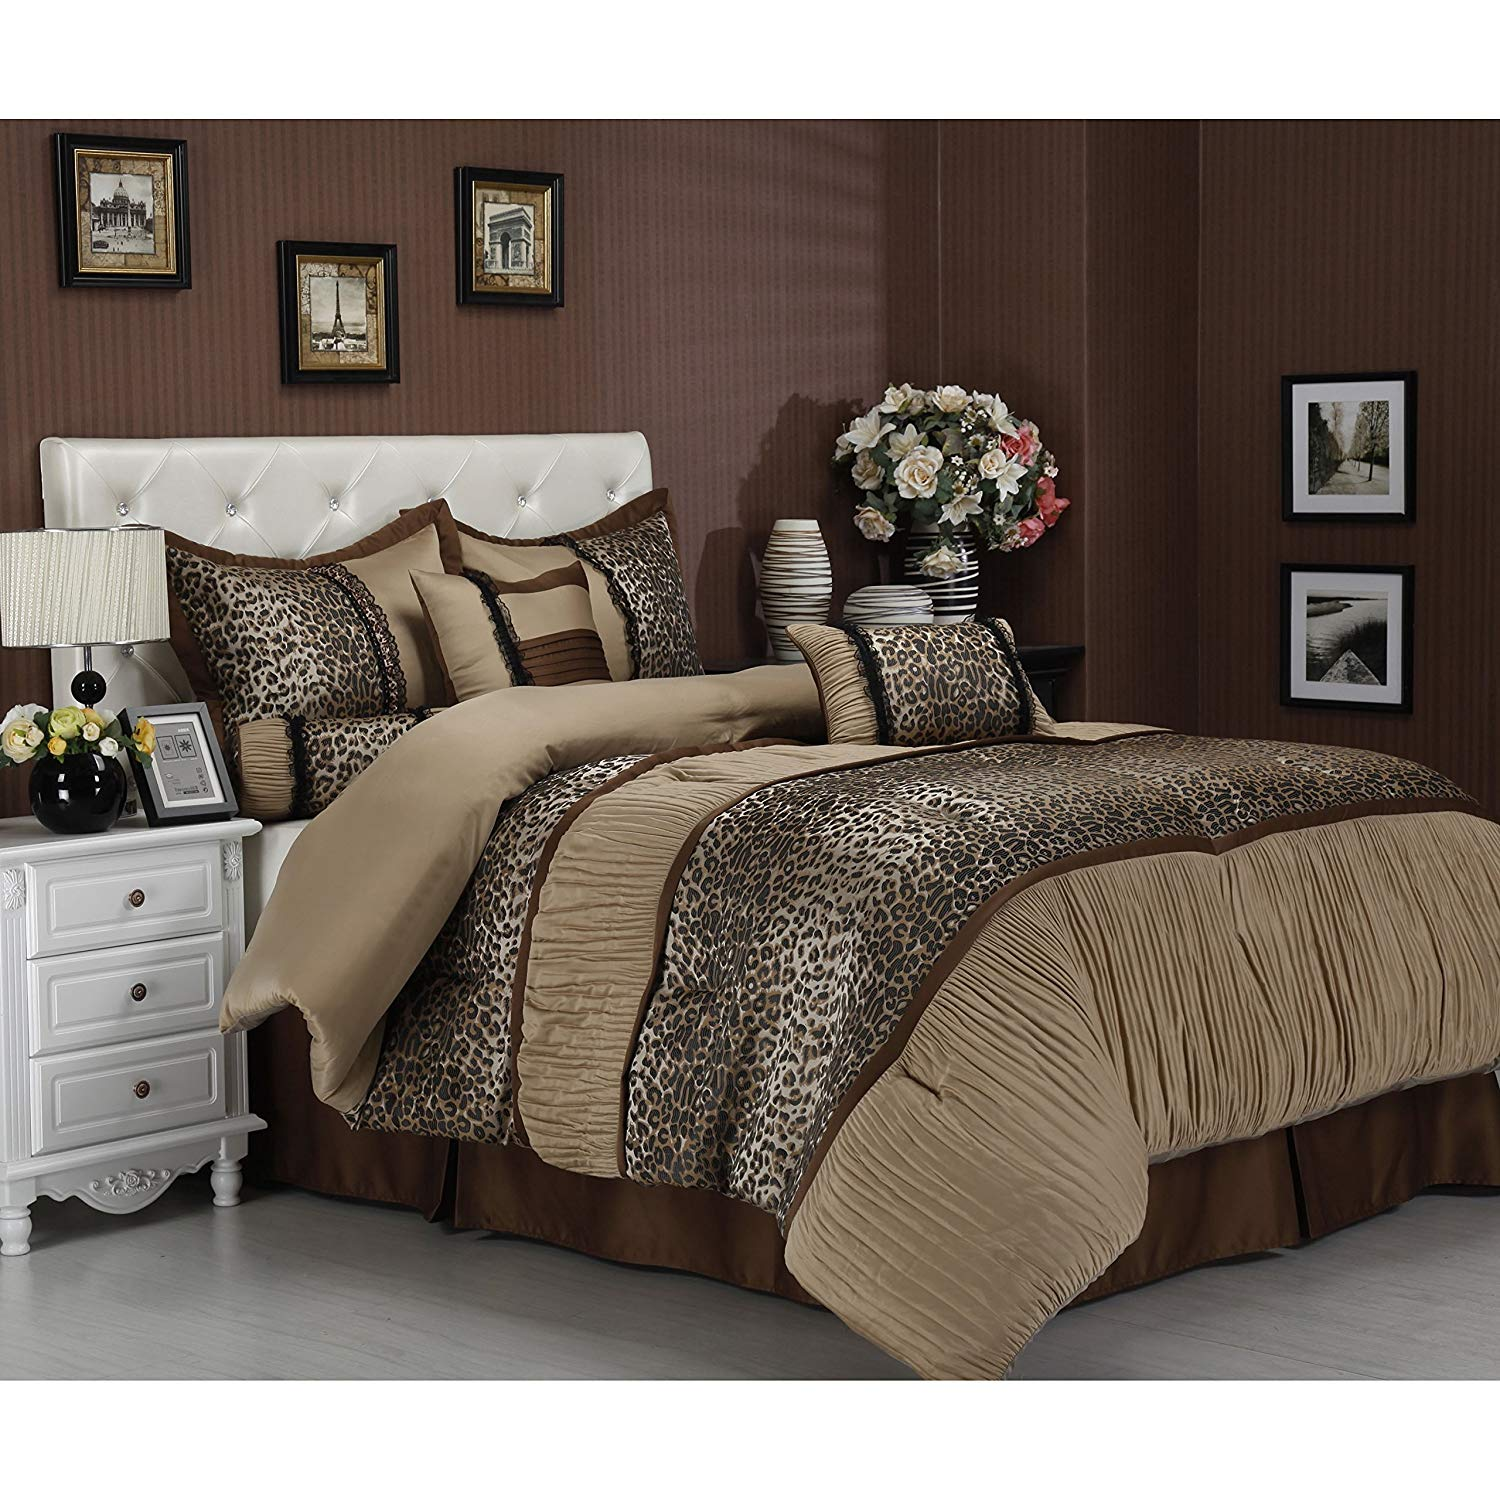 7 Piece Exotic Leopard Print Comforter Set Full Size, Featuring Wild Printed Tiger Design Ruched Texture Premium Bedding, Luxury High End Modern Chic Cozy Bedroom, Brown, Black, Beige